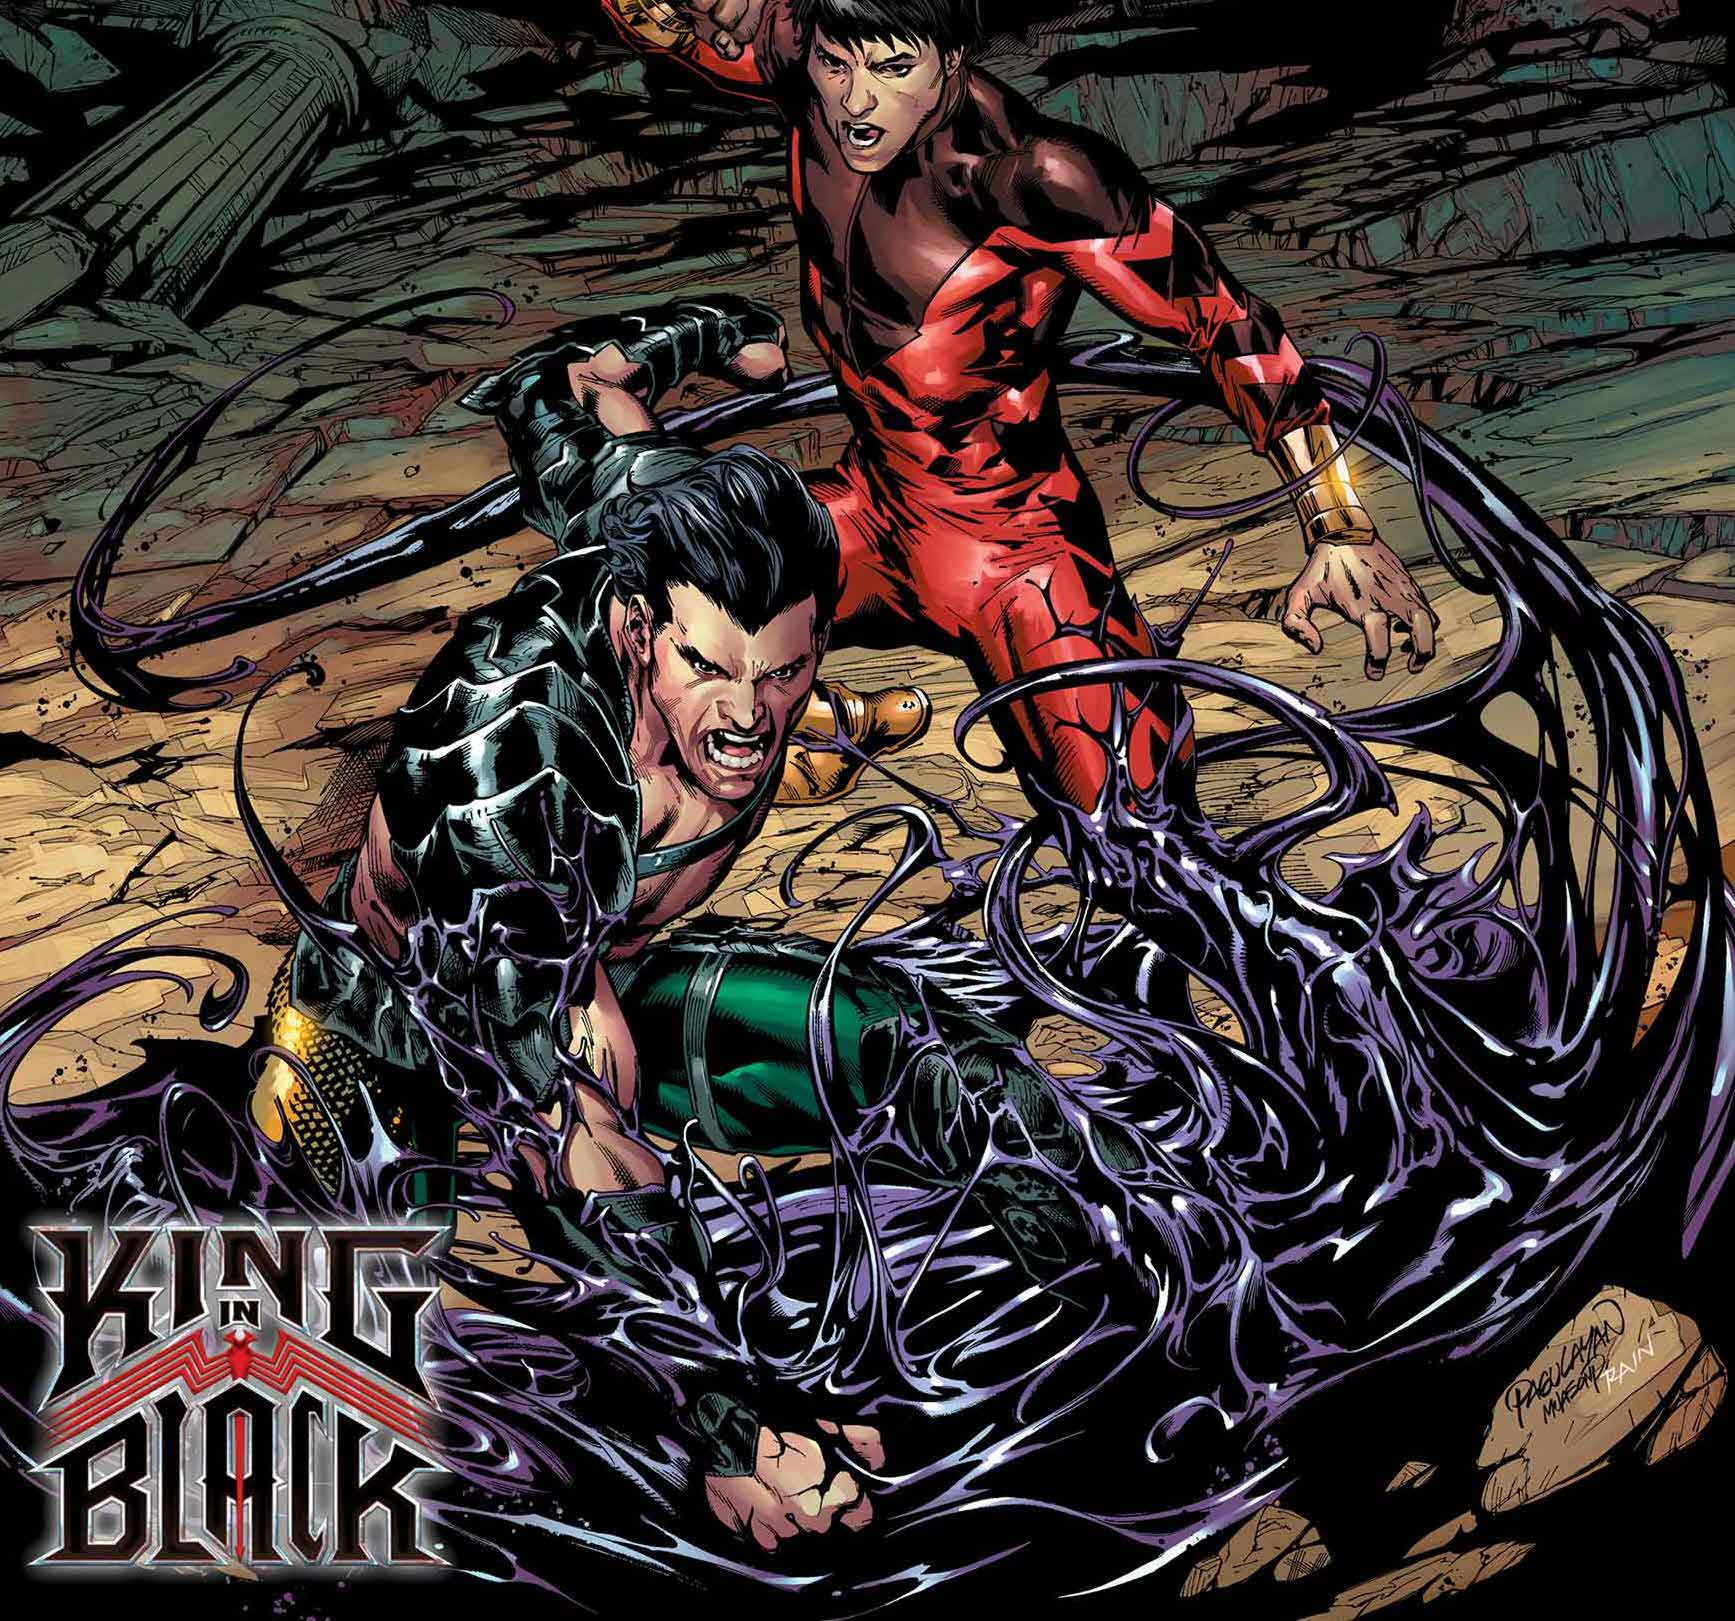 'Atlantis Attacks' #5 cover teases 'King in Black' storyline from artist Carlo Pagulayan